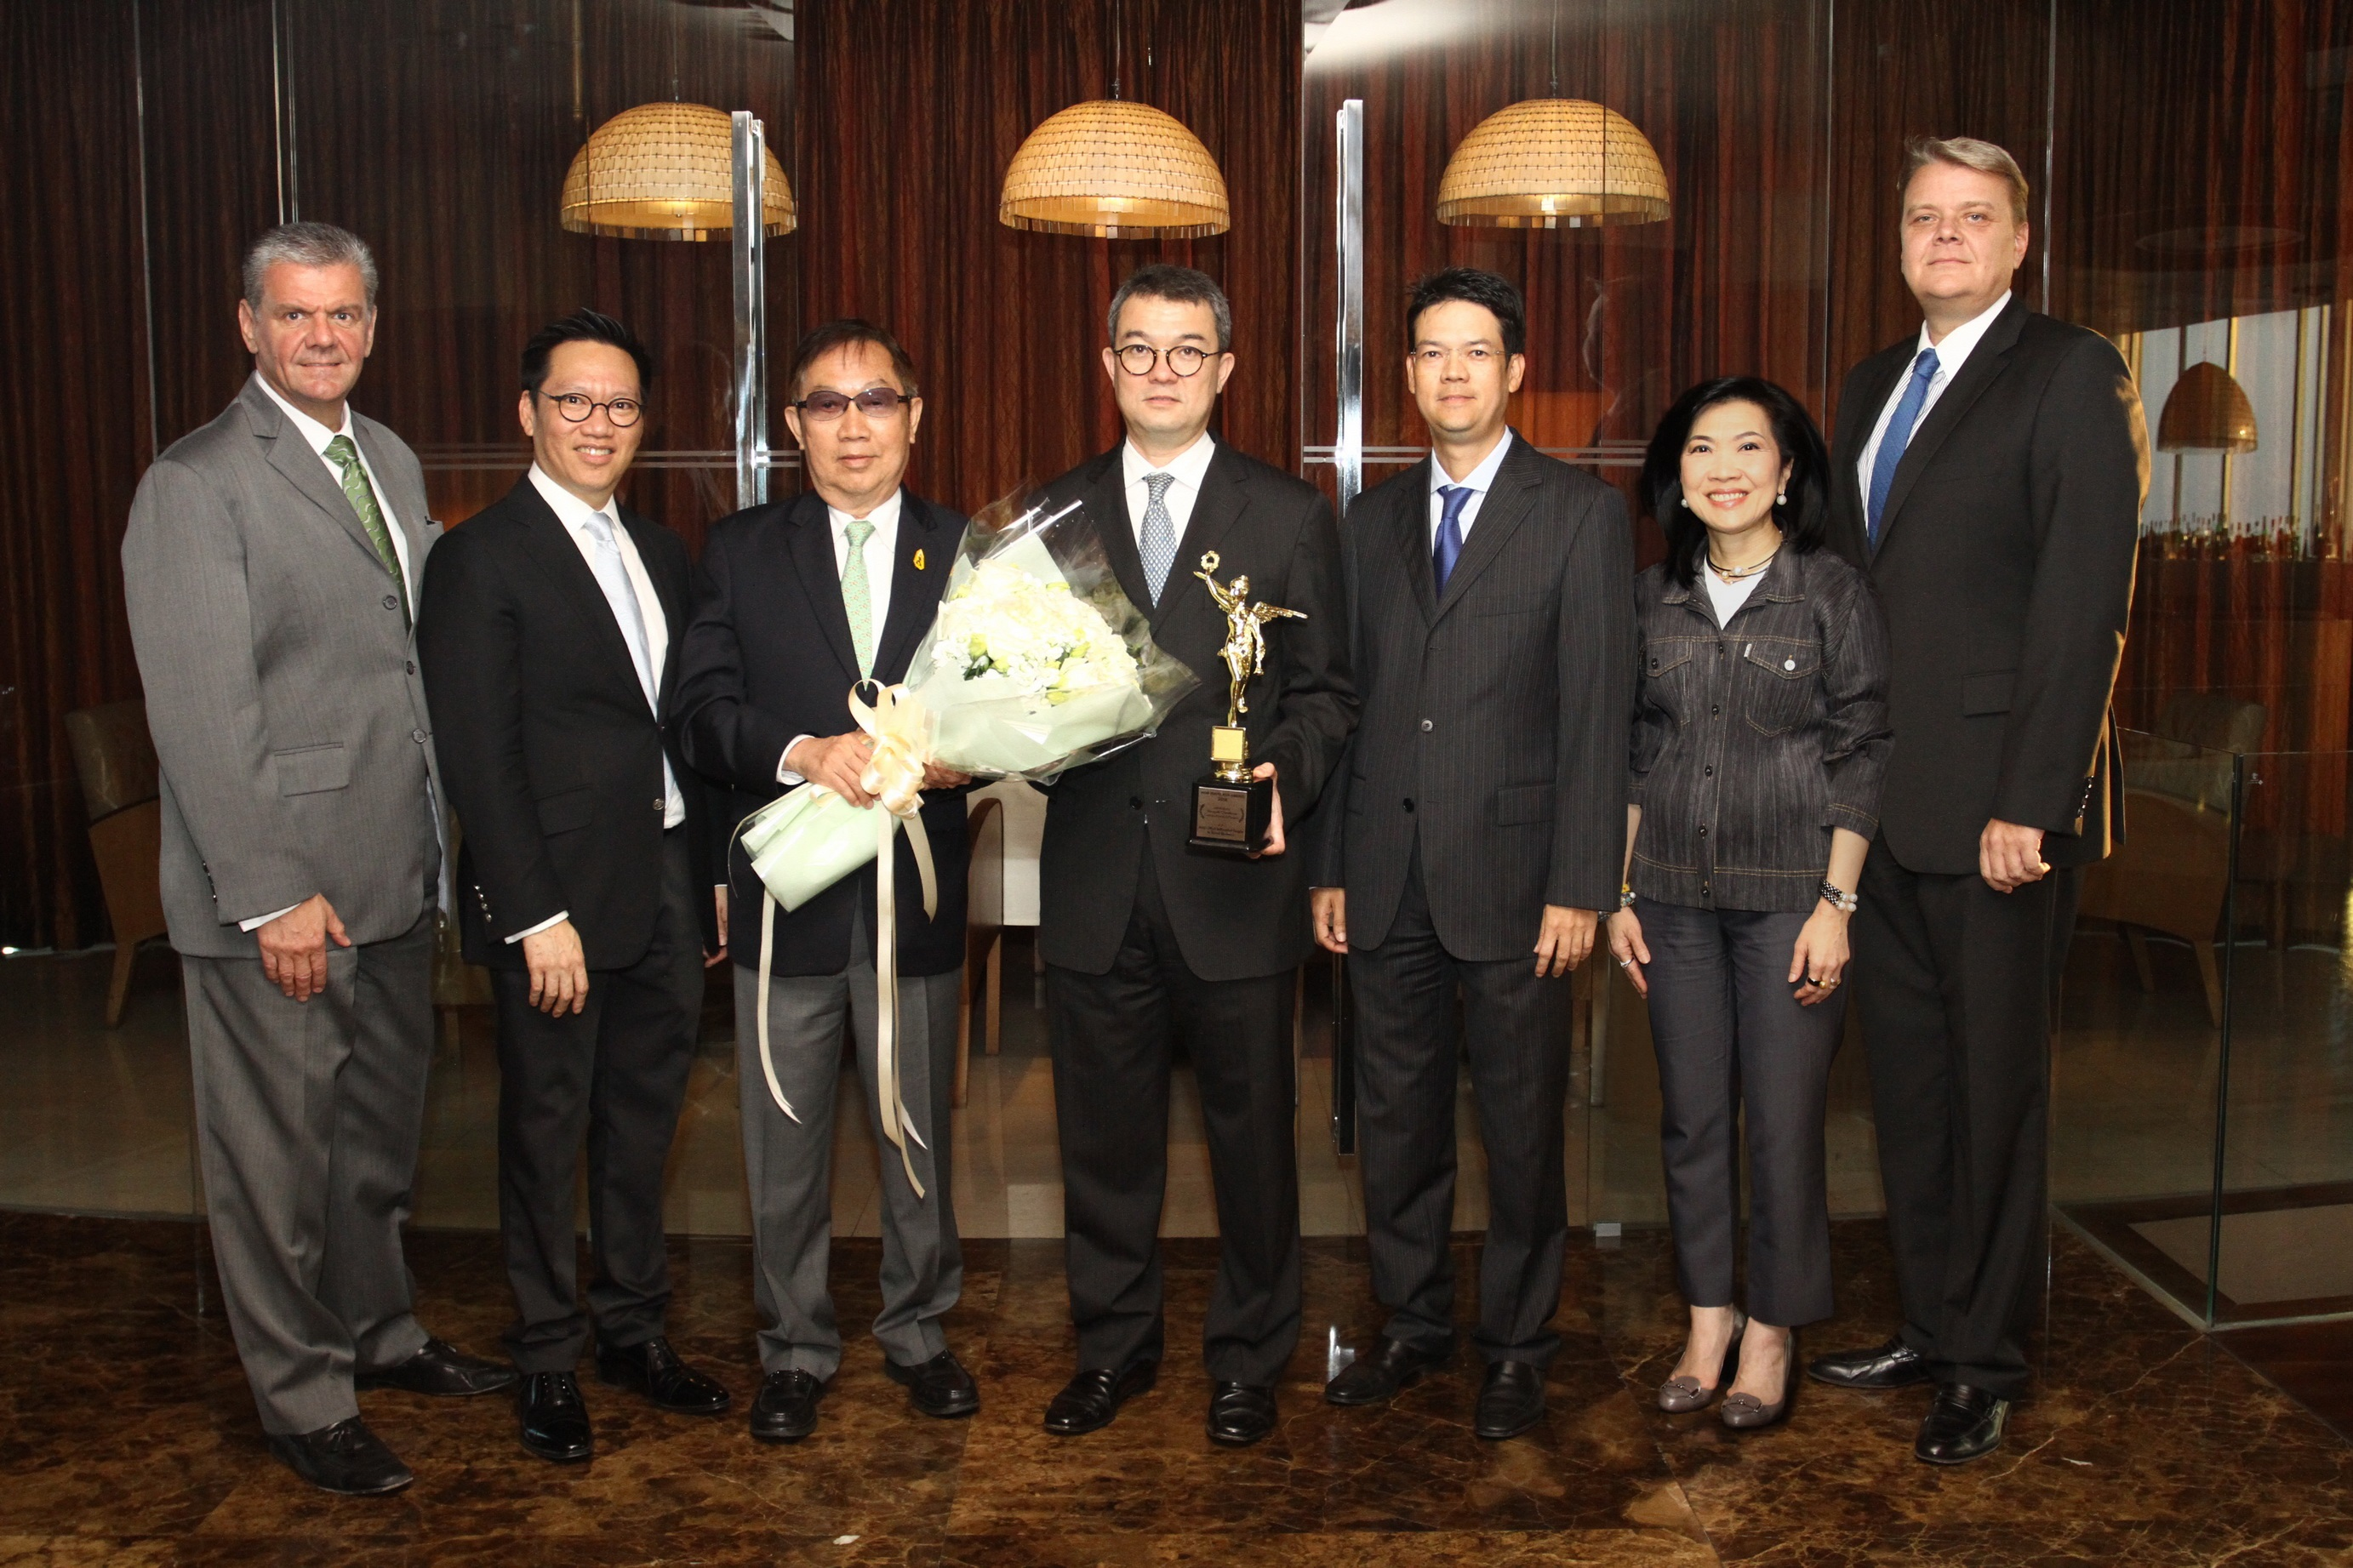 Centara CEO wins award